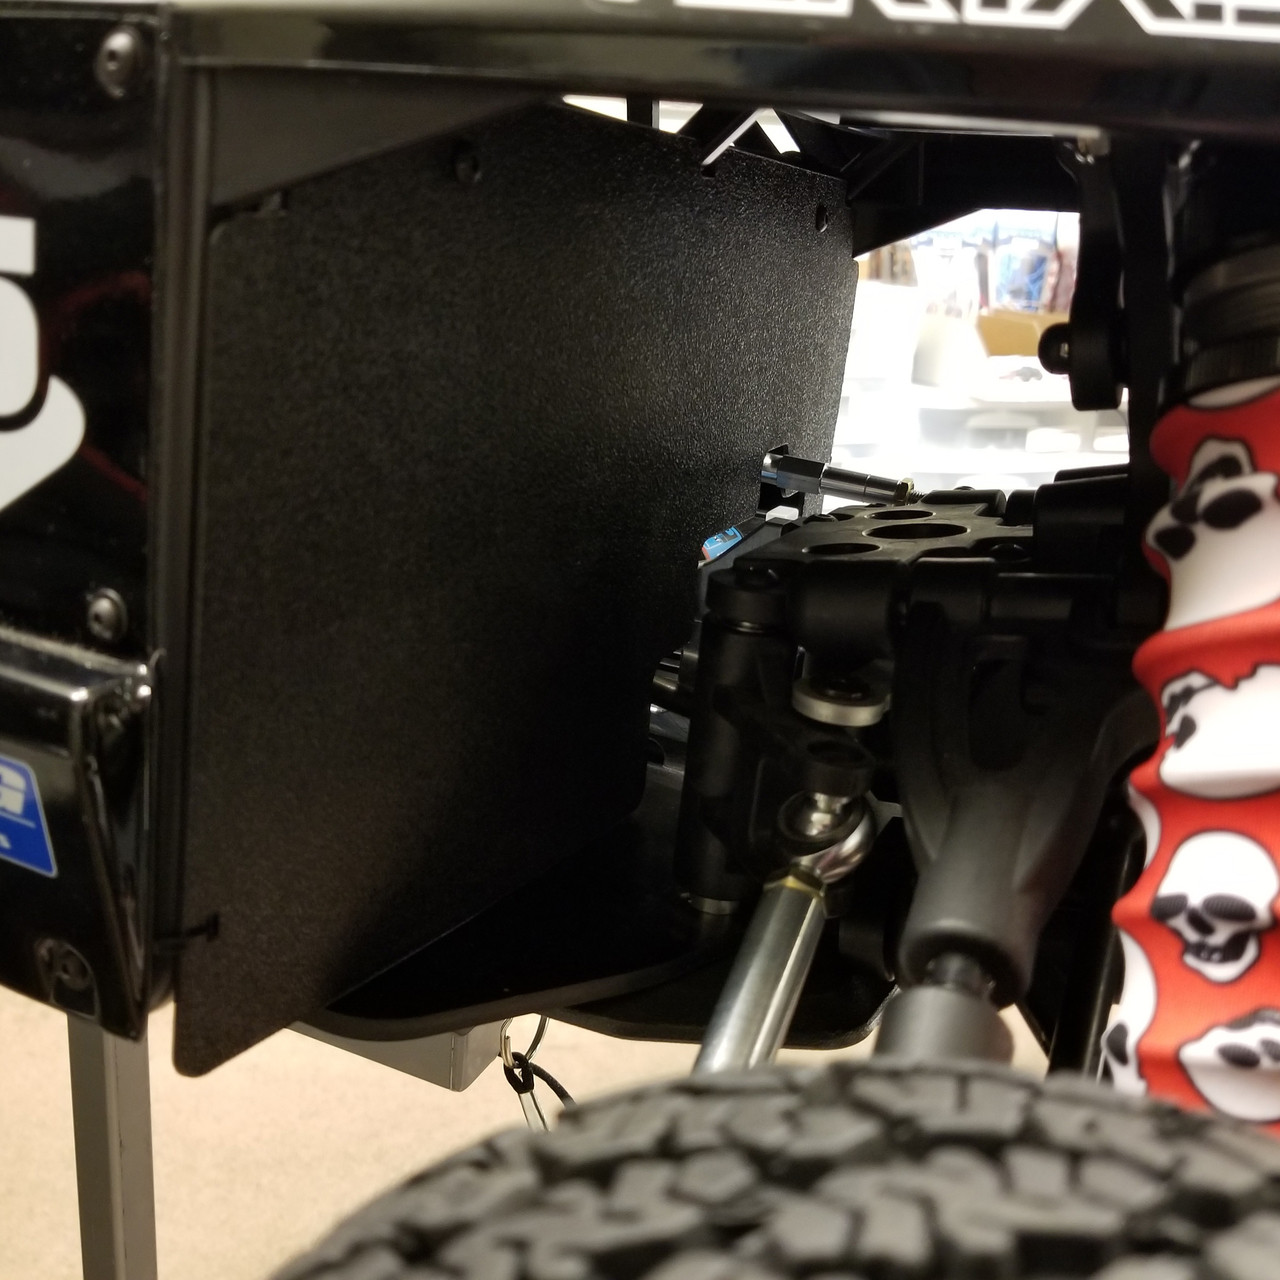 Mudguard fits tightly right in the middle of the Vekta.  Picture shows out Black ABS Mudguard.